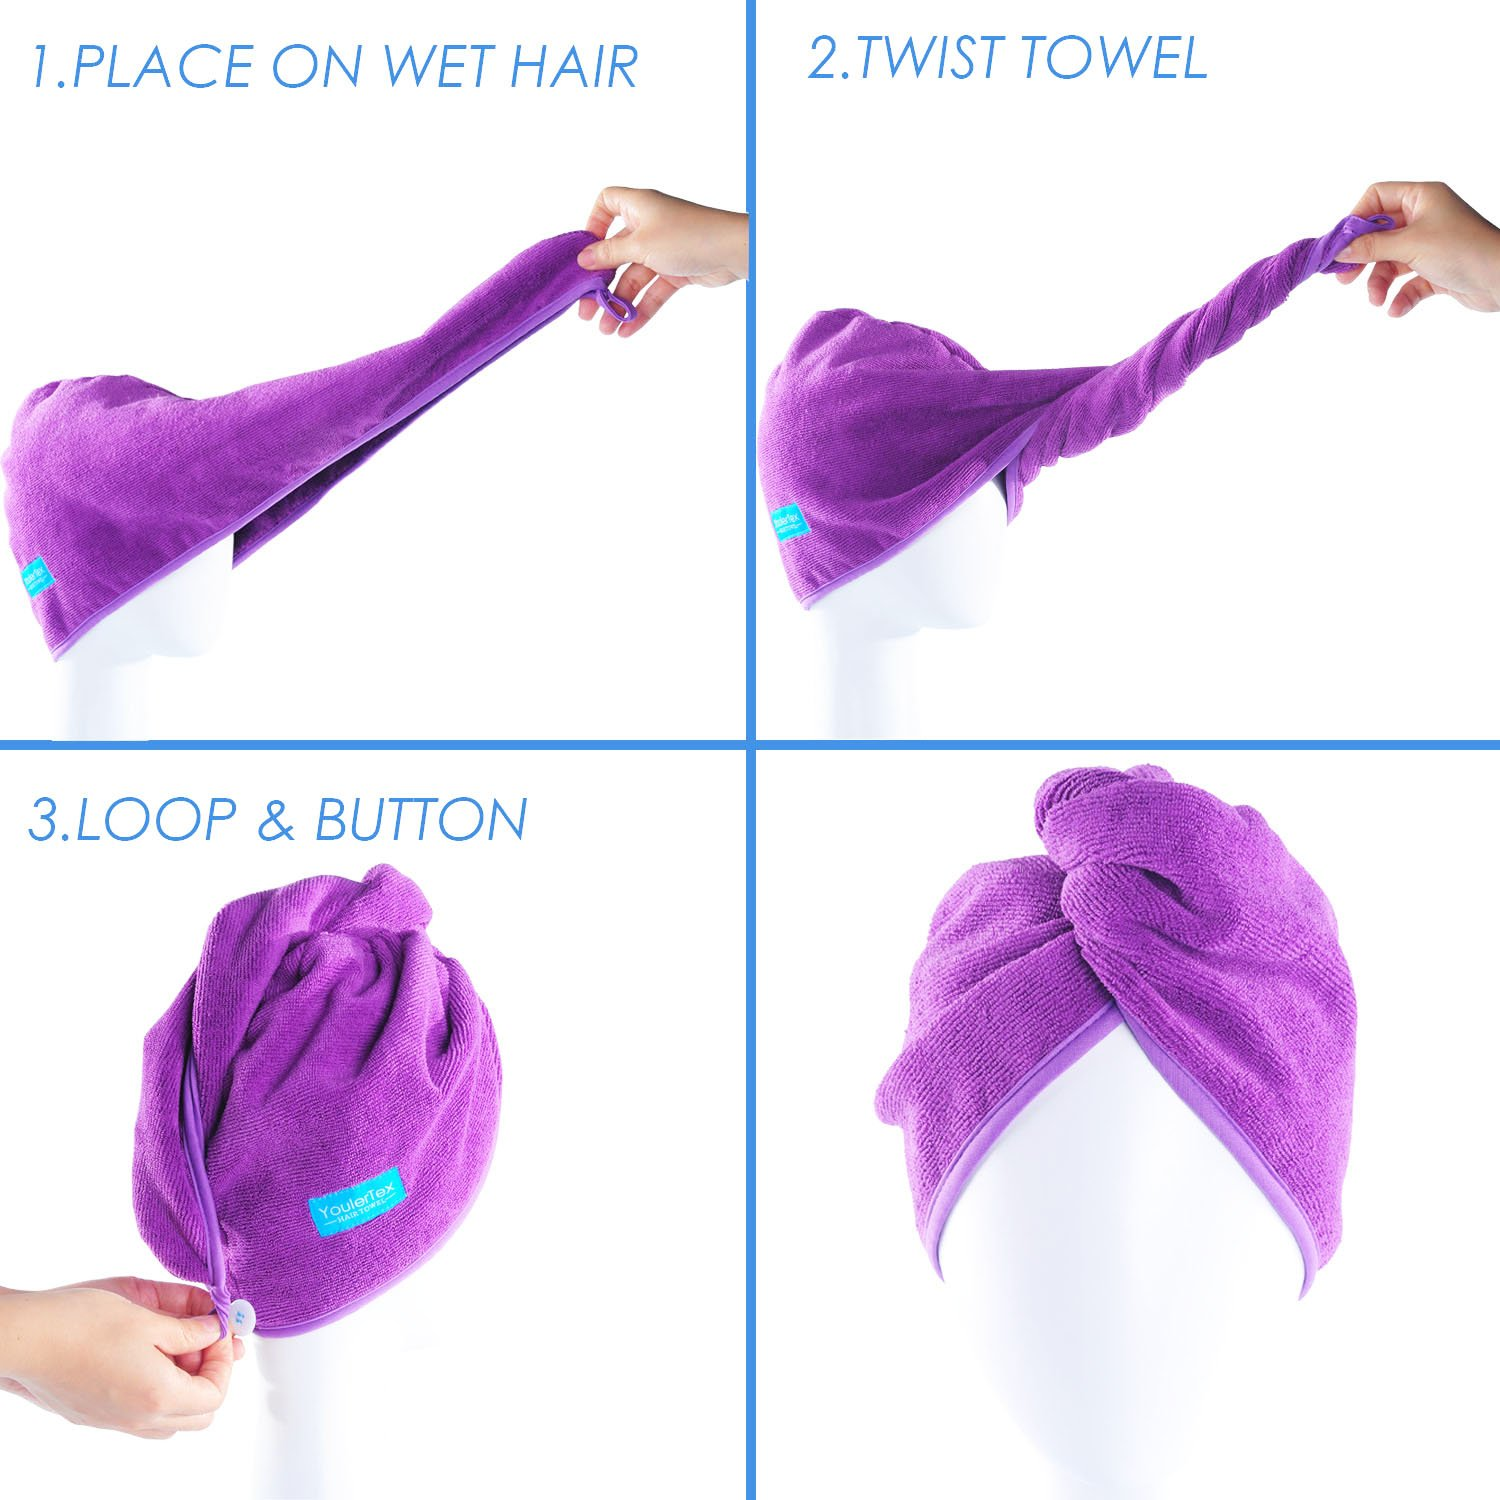 YoulerTex Microfiber Hair Towel Wrap for Women, 2 Pack 10 inch X 26 inch, Super Absorbent Quick Dry Hair Turban for Drying Curly, Long, Thick Hair(Purple+Gray) … : Beauty